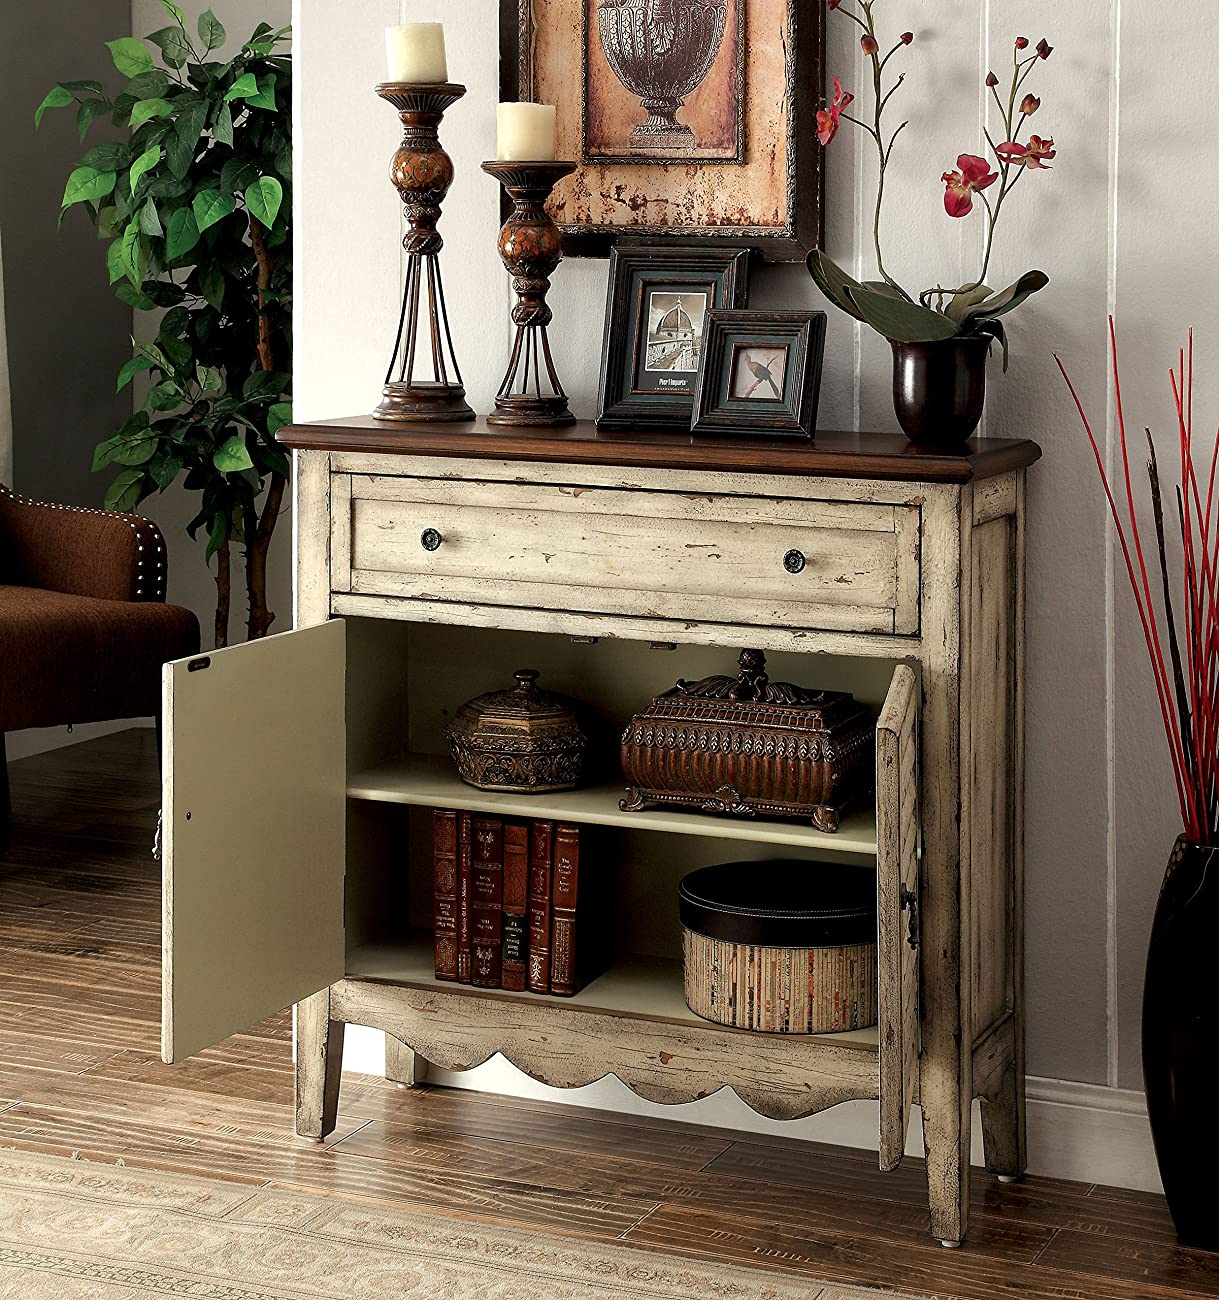 Furniture of America Gladen Vintage Style Storage Cabinet, Antique White/Brown 1